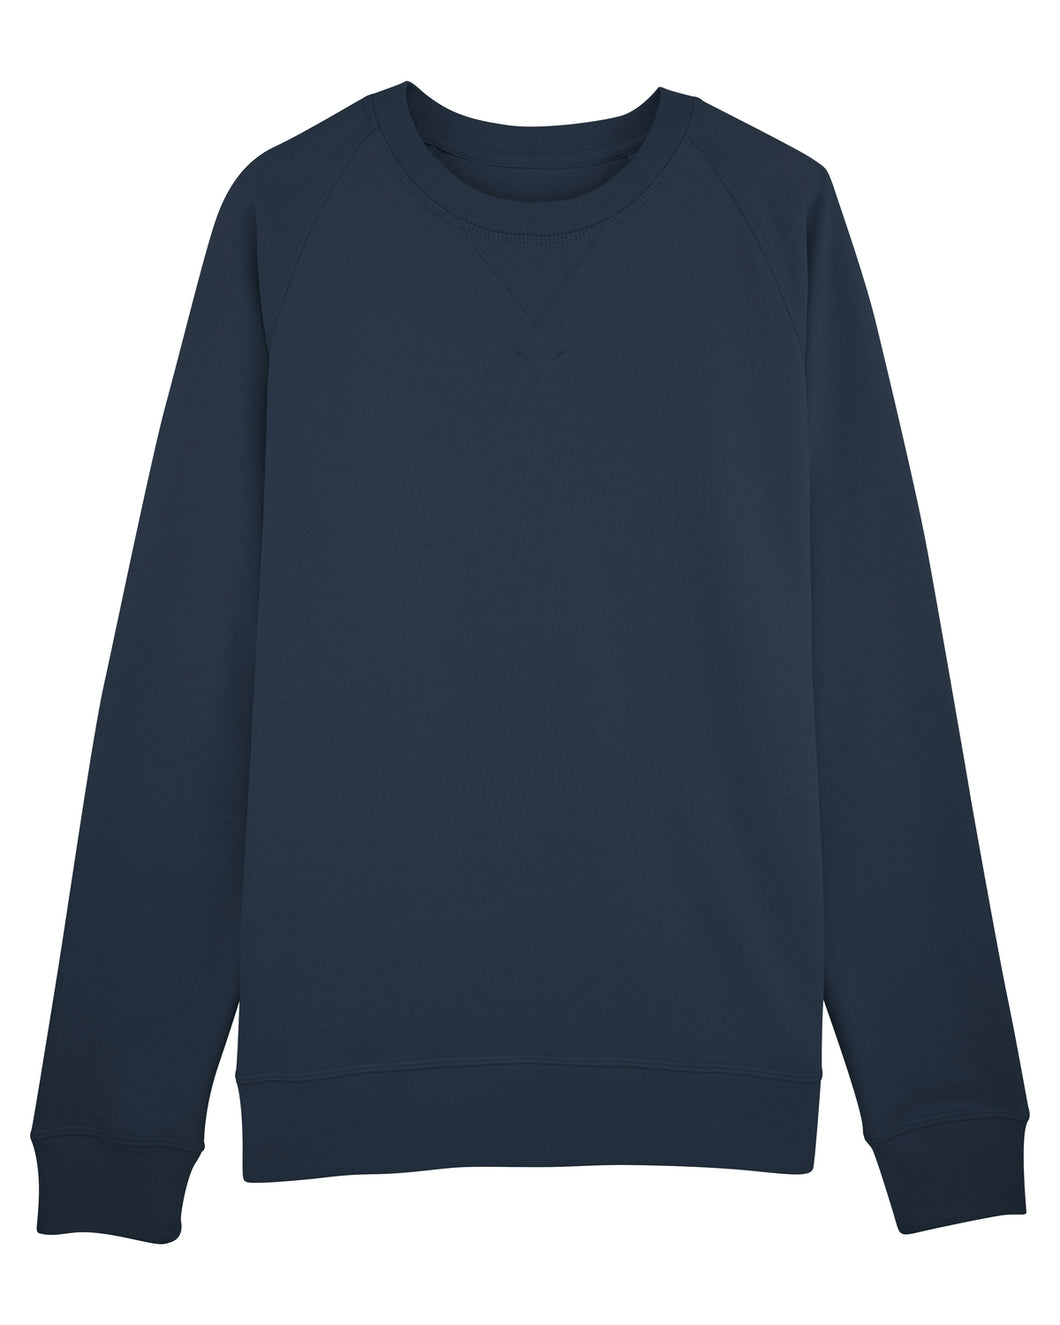 Oh Meneer Sweater - Marineblauw